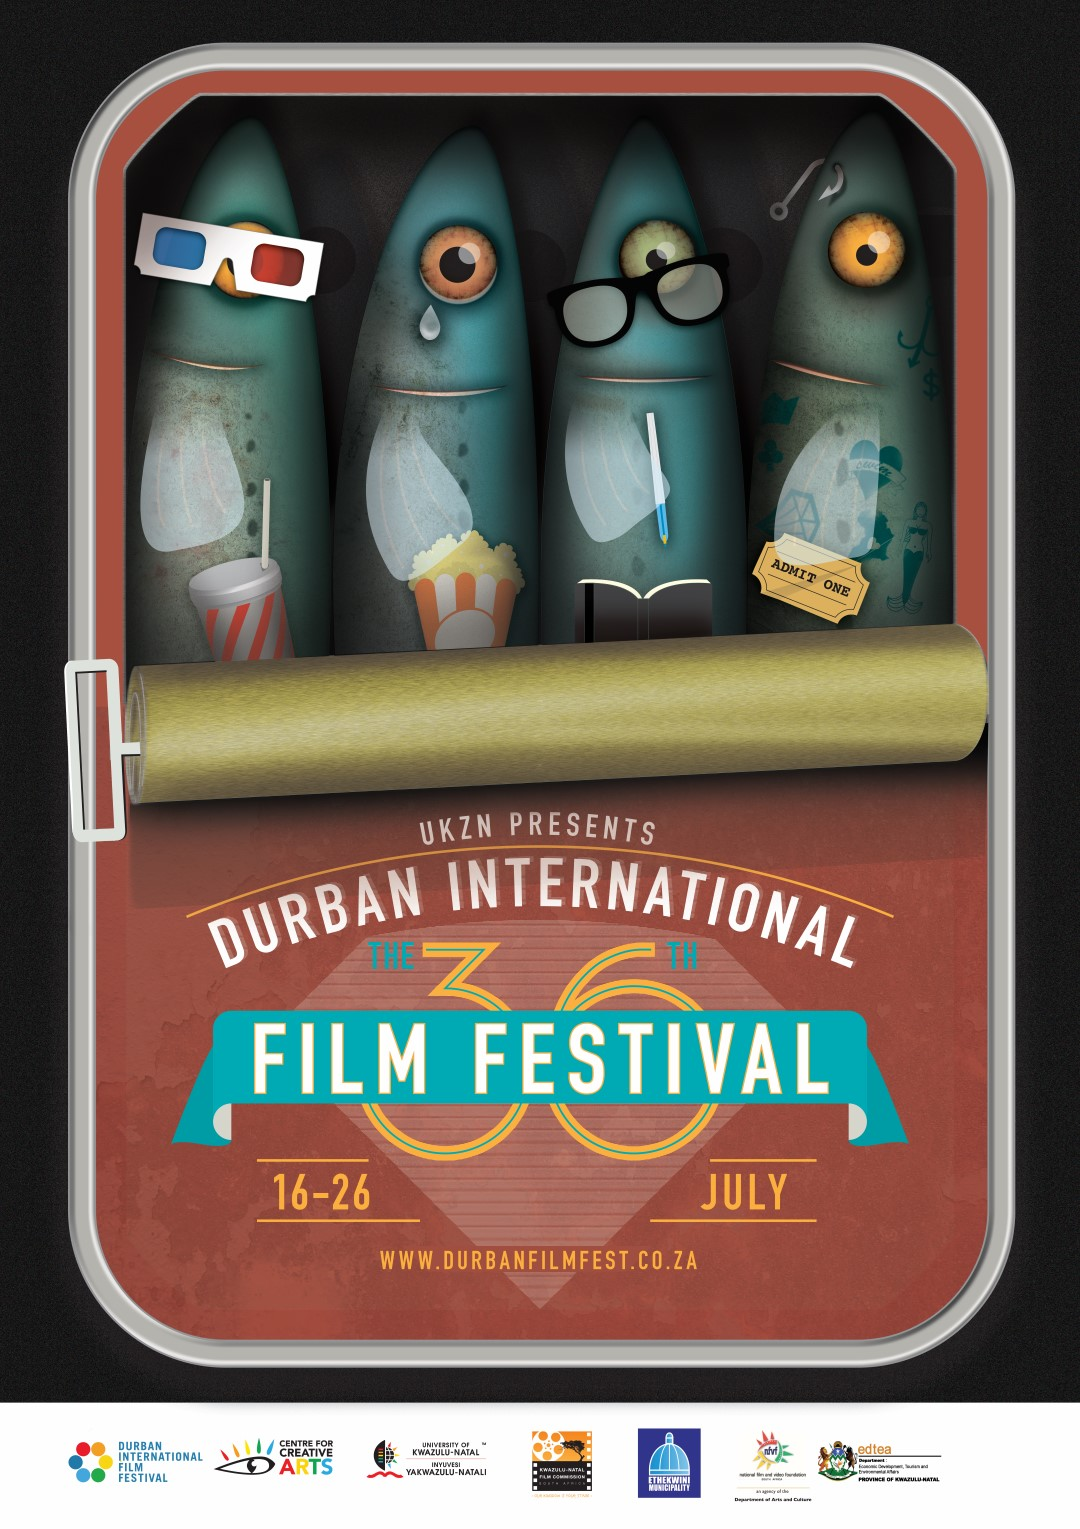 DURBAN INTERNATIONAL FILM FESTIVAL 2015